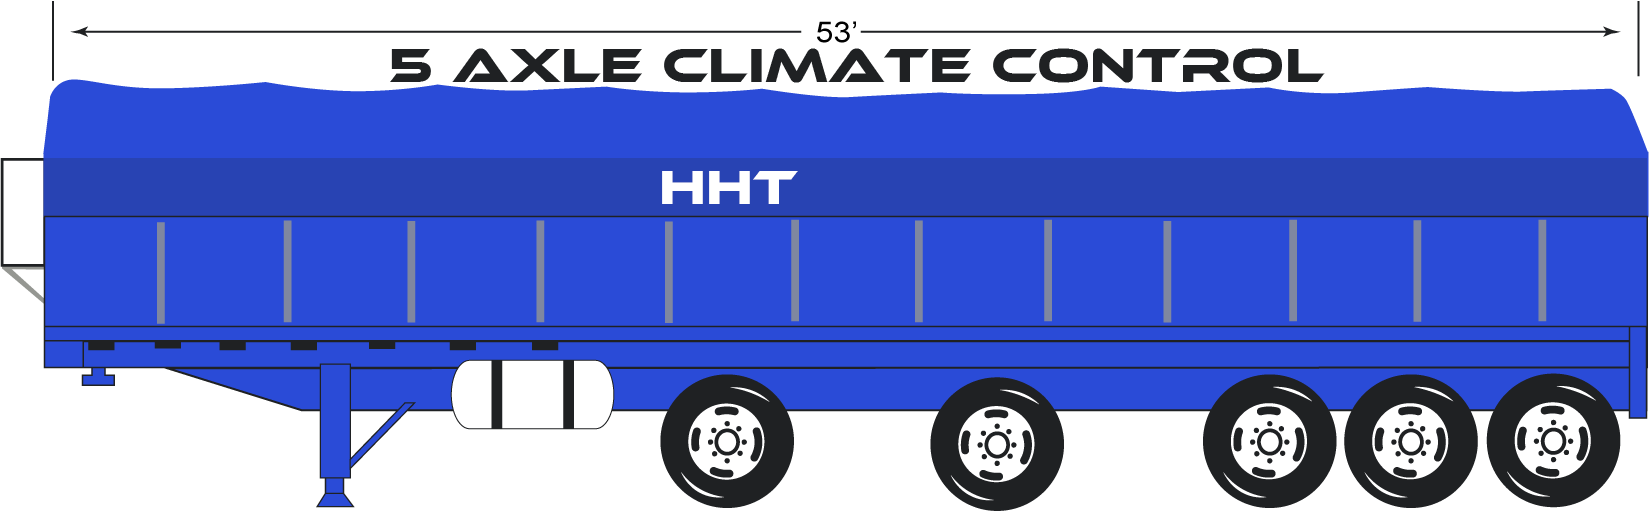 5 AXLE CLIMATE CONTROL